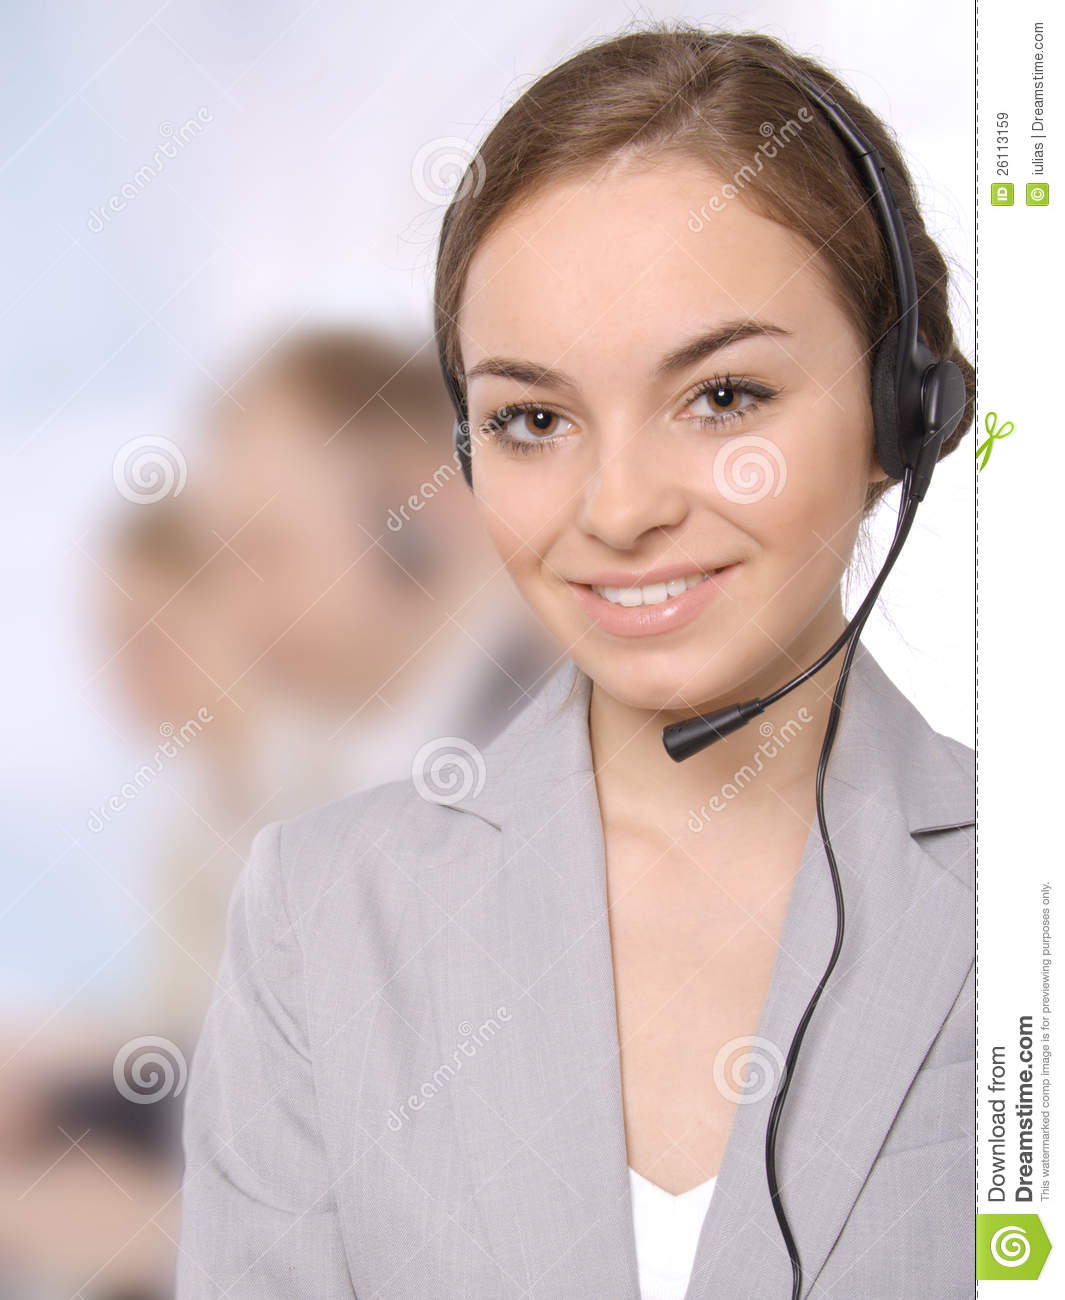 Group Portrait Of Happy Customer Service People Royalty Free Stock Images